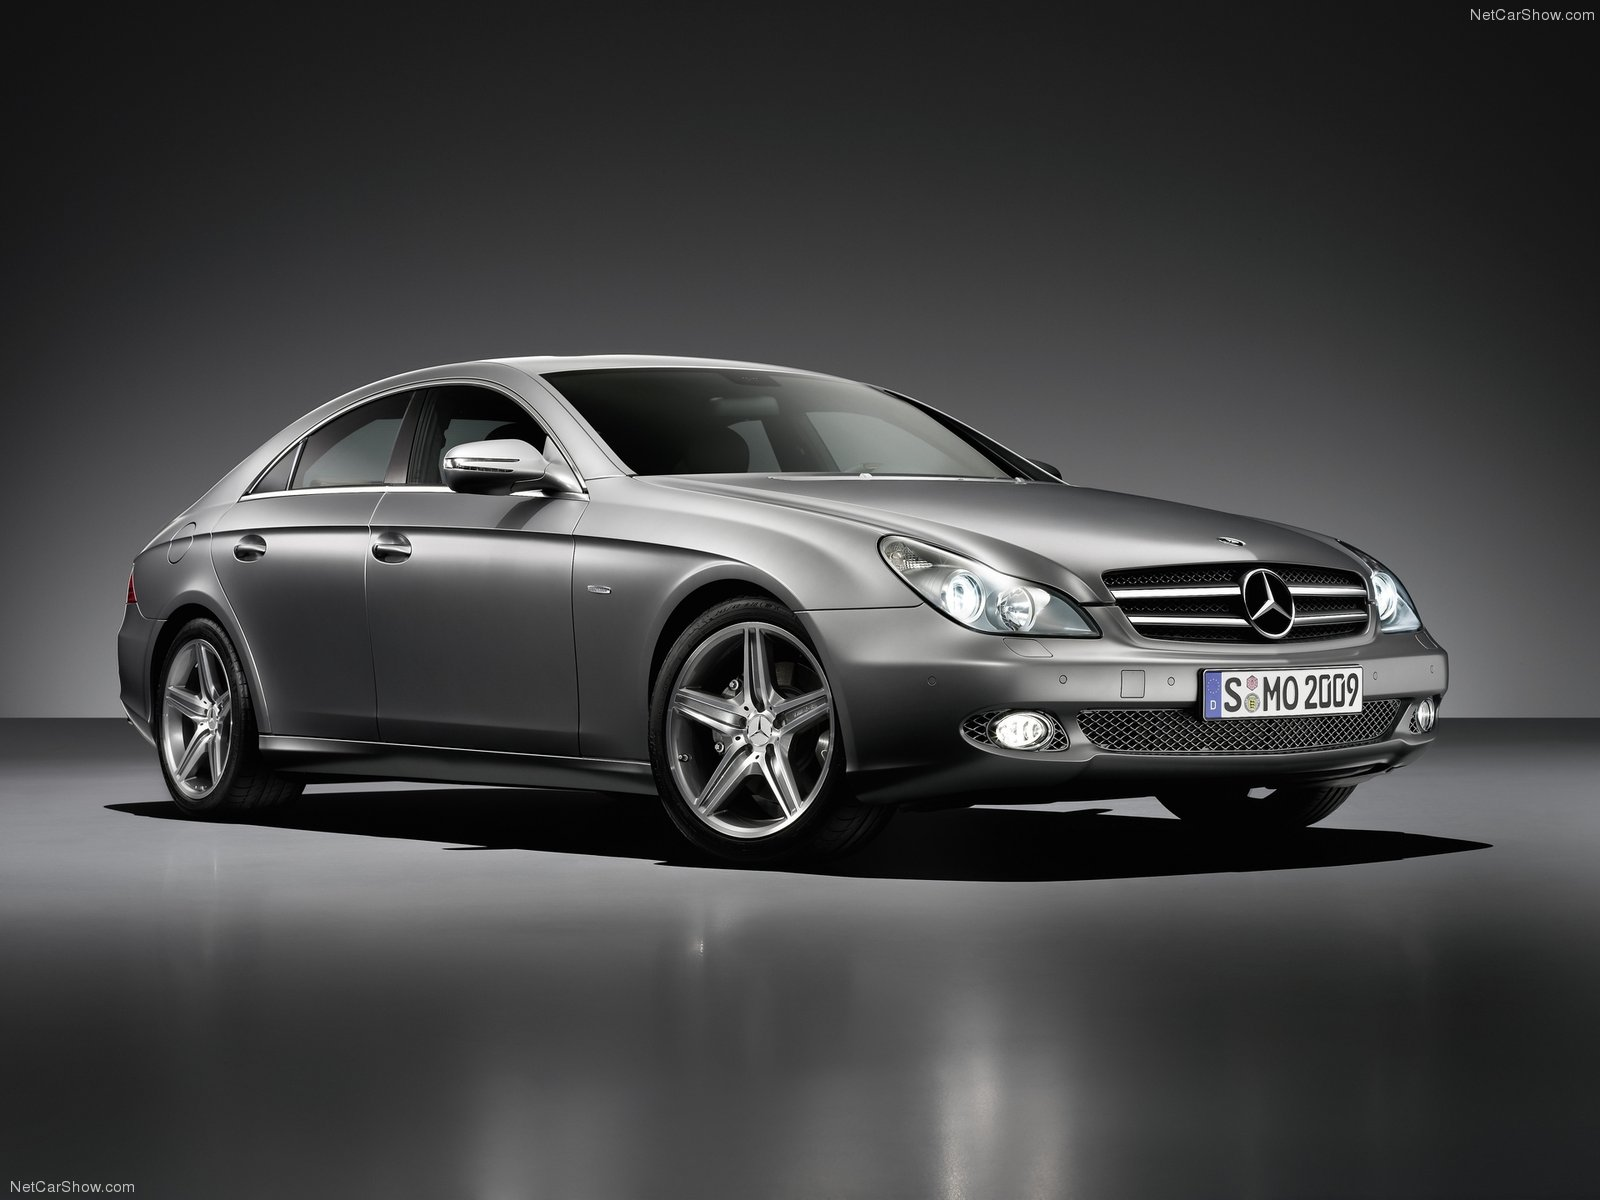 Mercedes-Benz-CLS_Grand_Edition-2009-1600-01.jpg